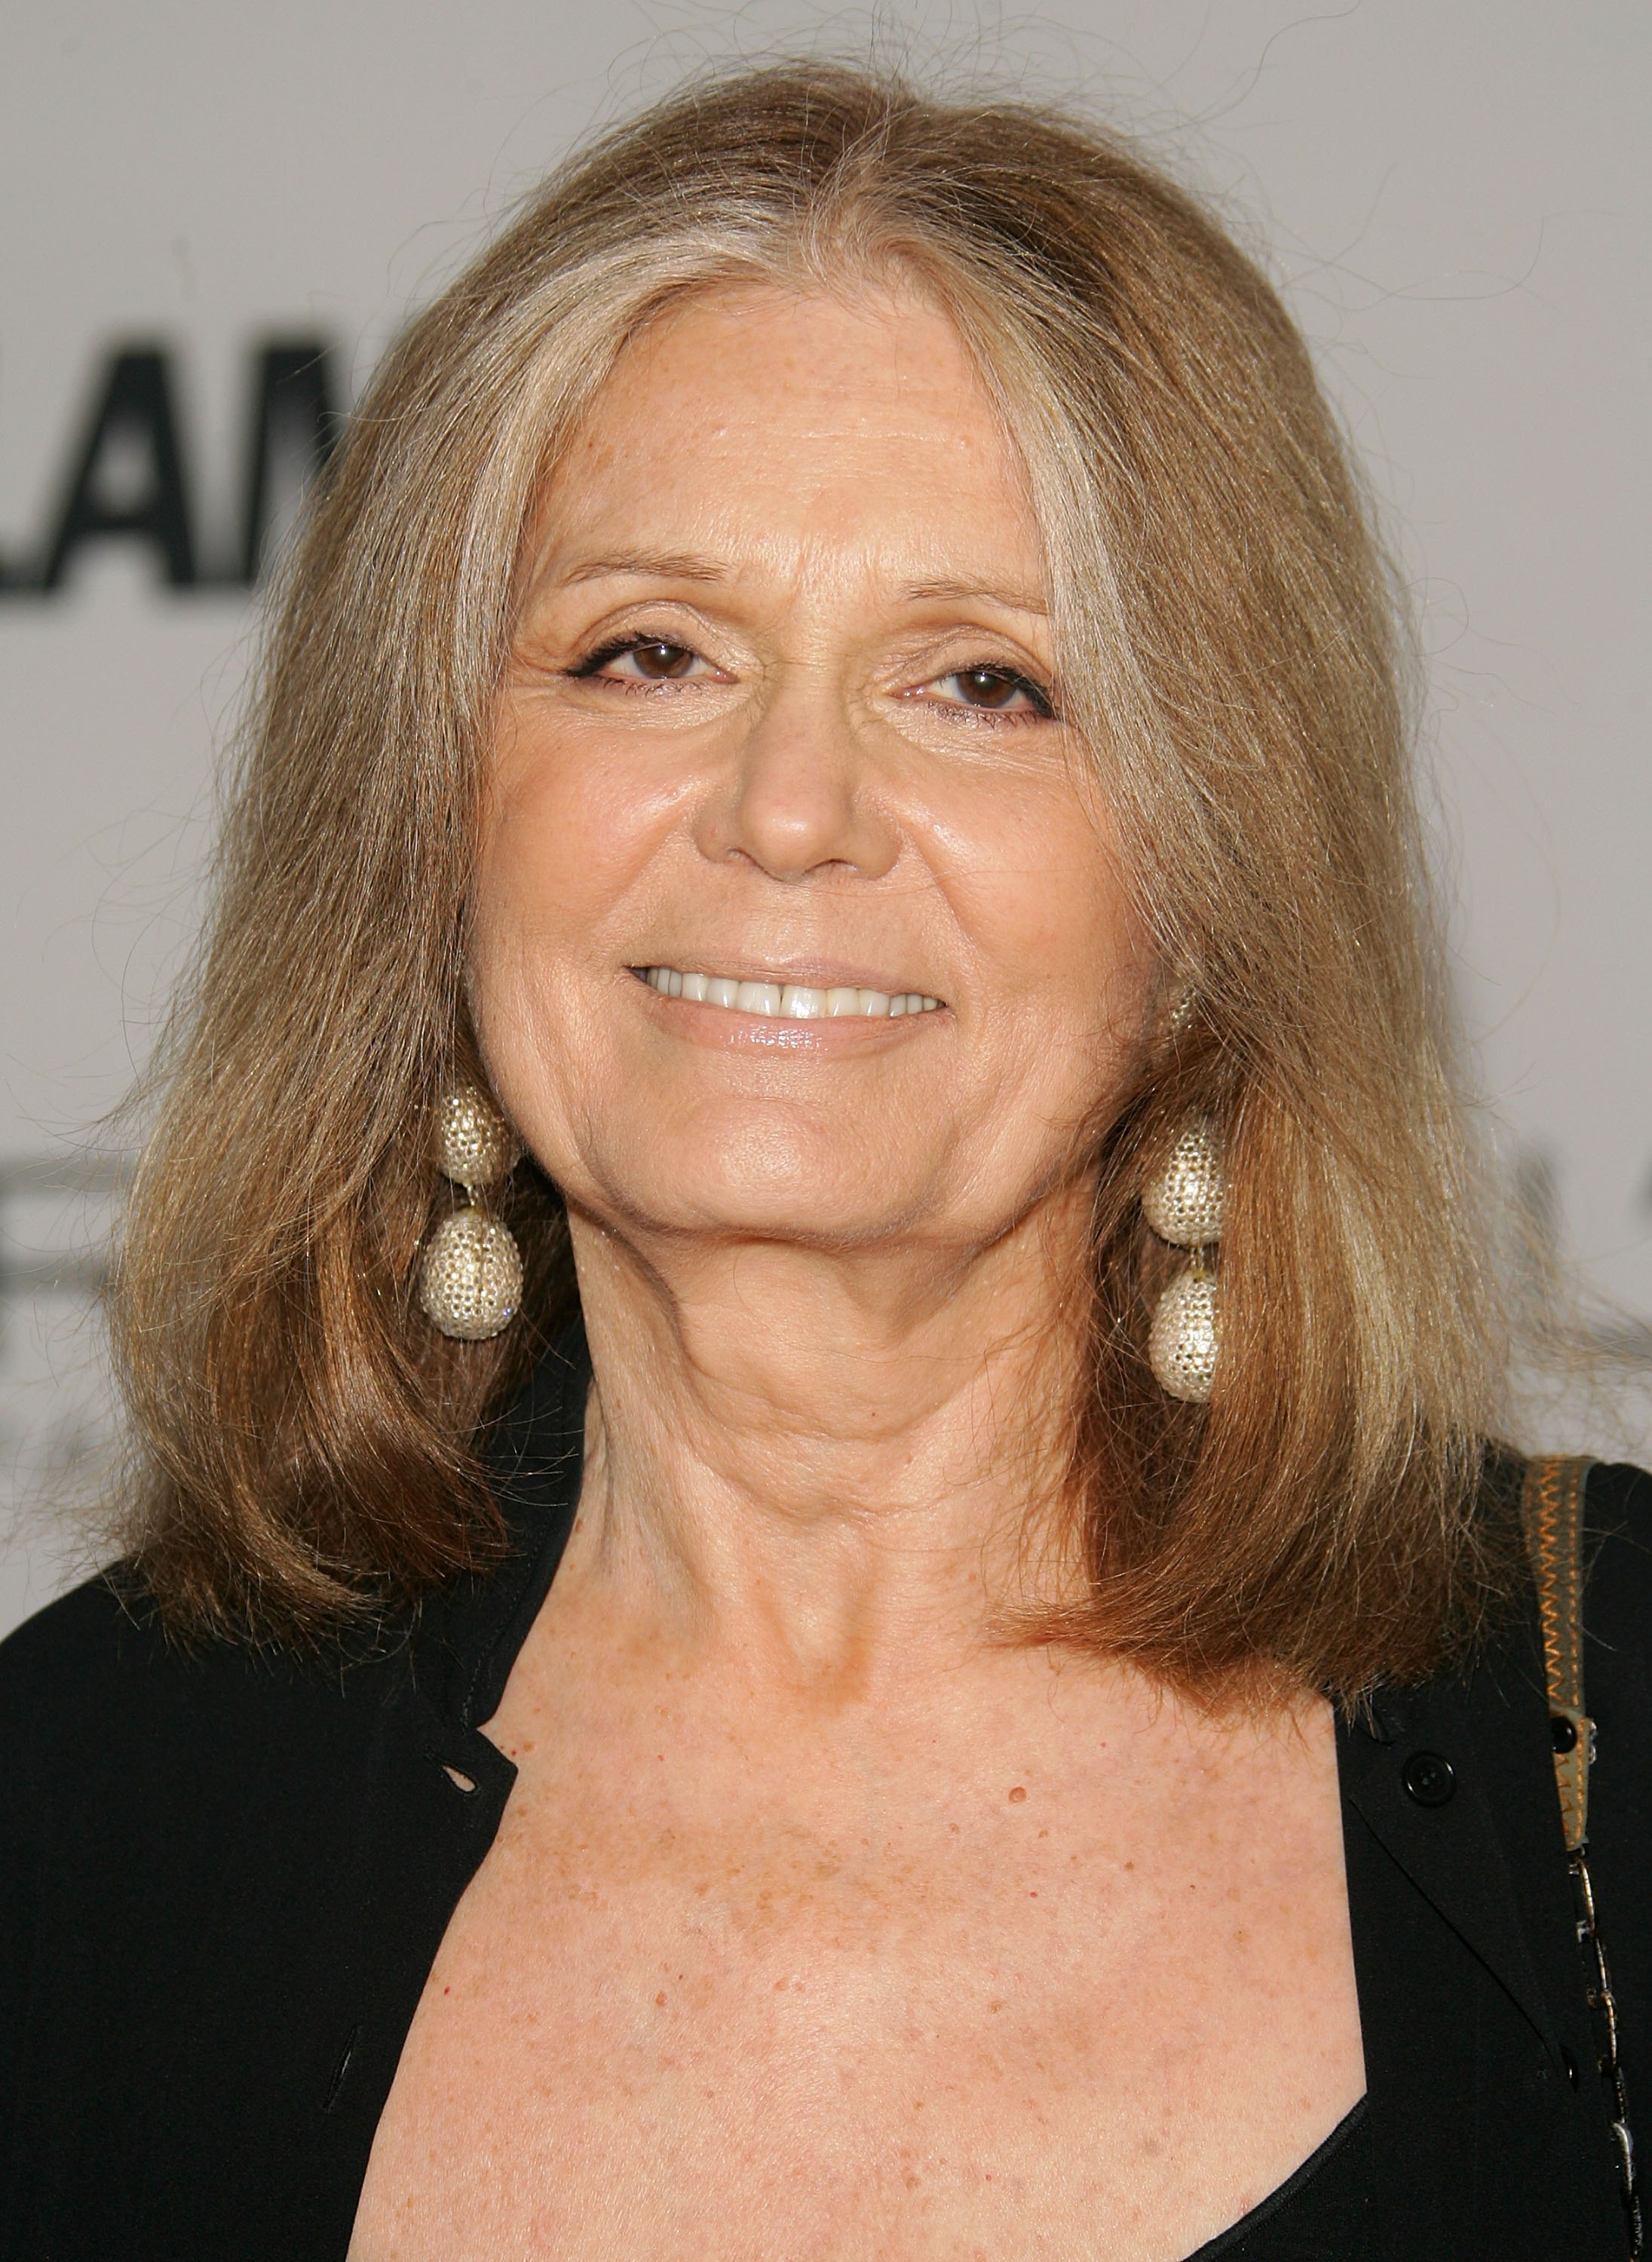 gloria steinem familygloria steinem my life on the road, gloria steinem books, gloria steinem bio, gloria steinem reddit, gloria steinem ms, gloria steinem christian bale, gloria steinem story, gloria steinem memoir, gloria steinem family, gloria steinem wilma mankiller, gloria steinem and betty friedan, gloria steinem my life, gloria steinem woman, gloria steinem and israel, gloria steinem biography, gloria steinem and flo kennedy, gloria steinem phrases, gloria steinem epub, gloria steinem ideas, gloria steinem quotes